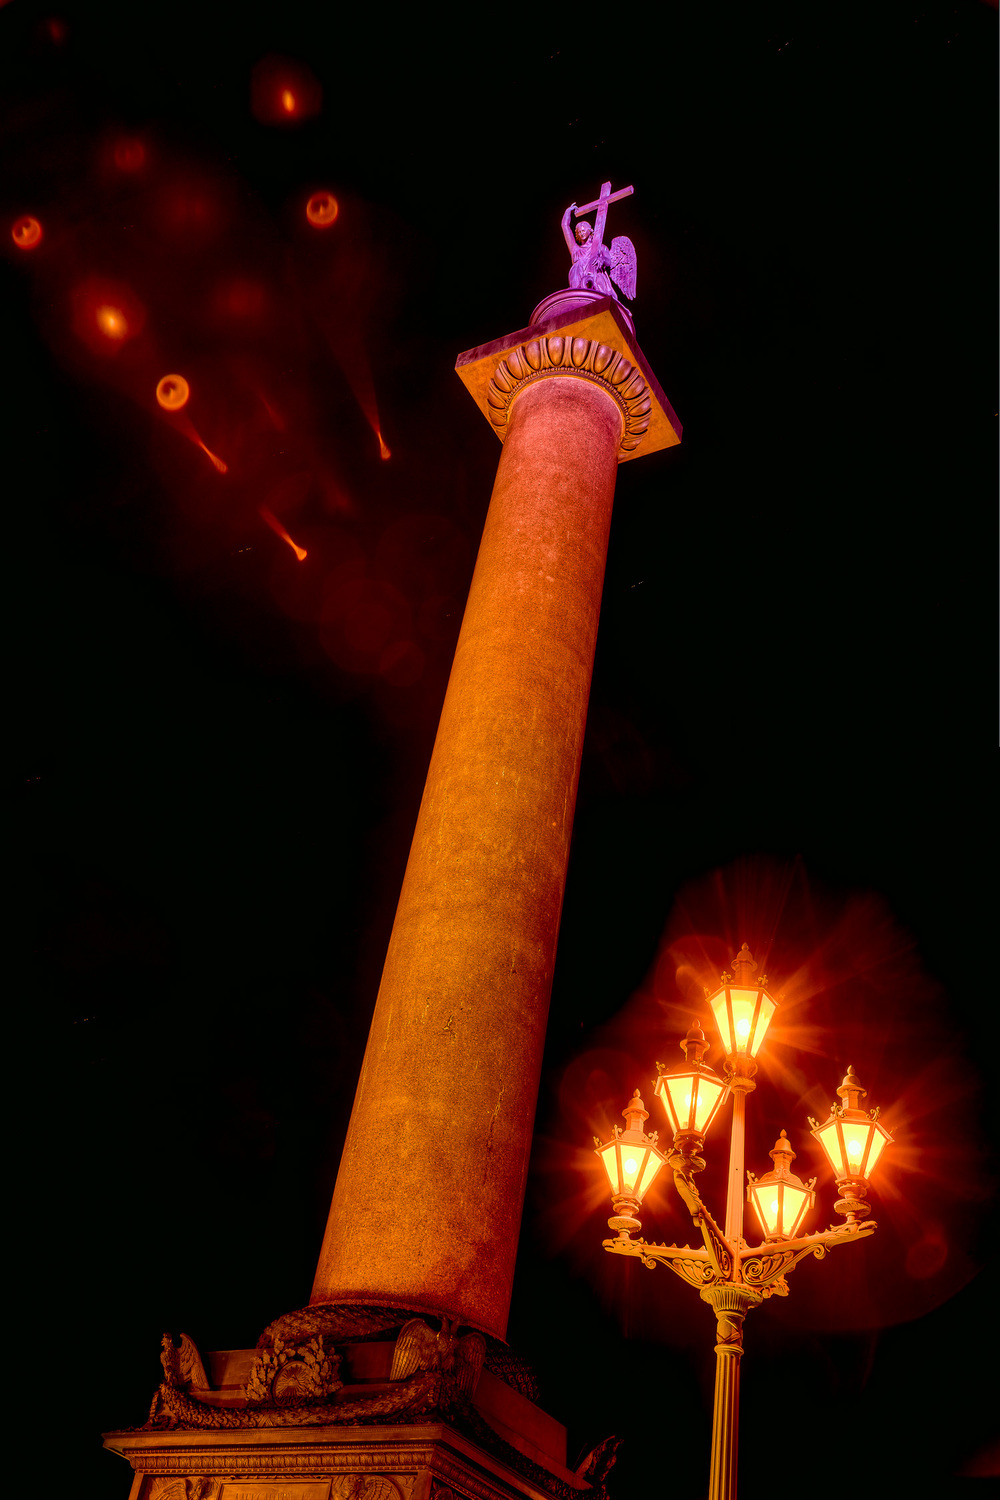 Alexander Column at Night, Palace Square, St. Petersburg